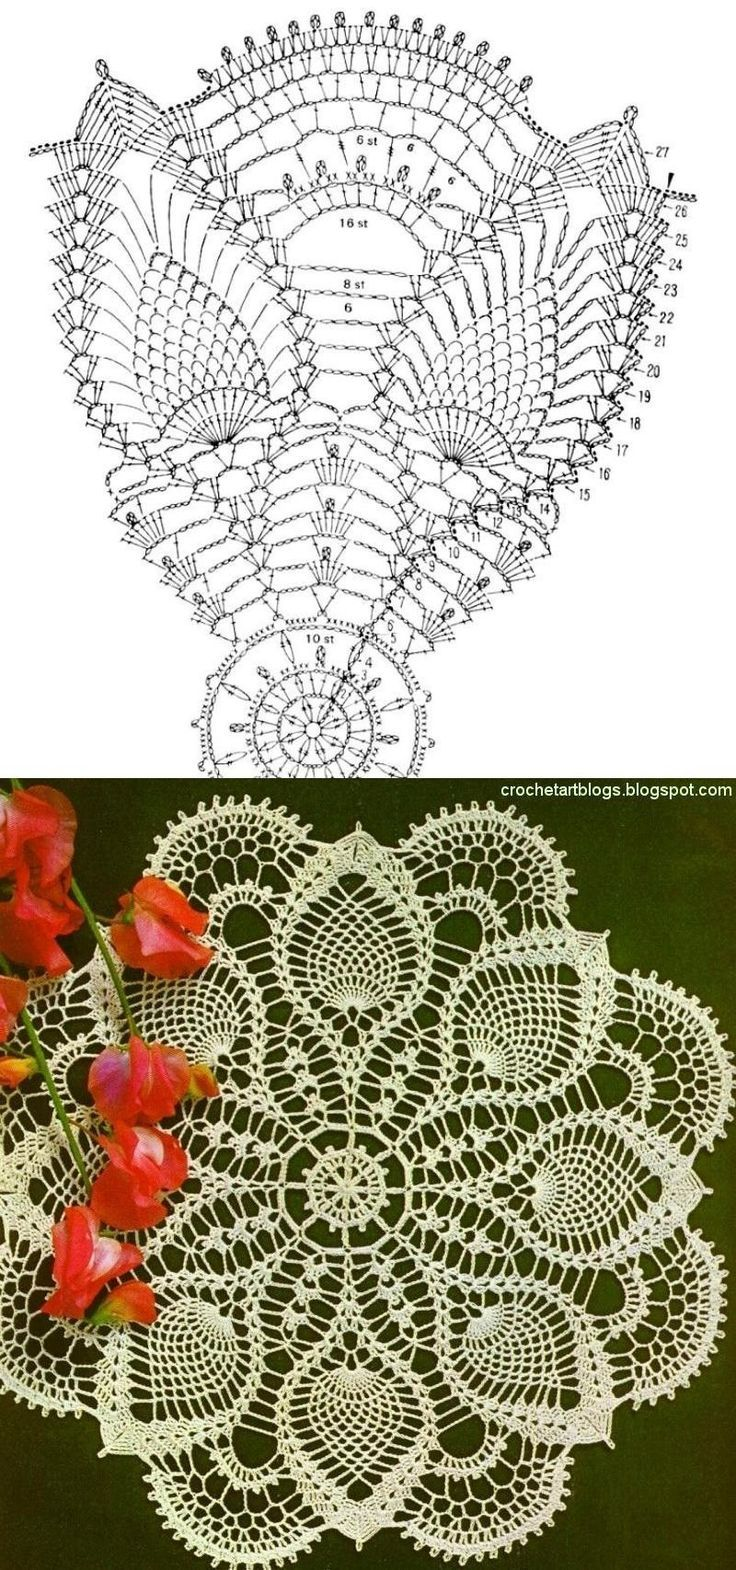 Lots of free crochet doily patterns here.: